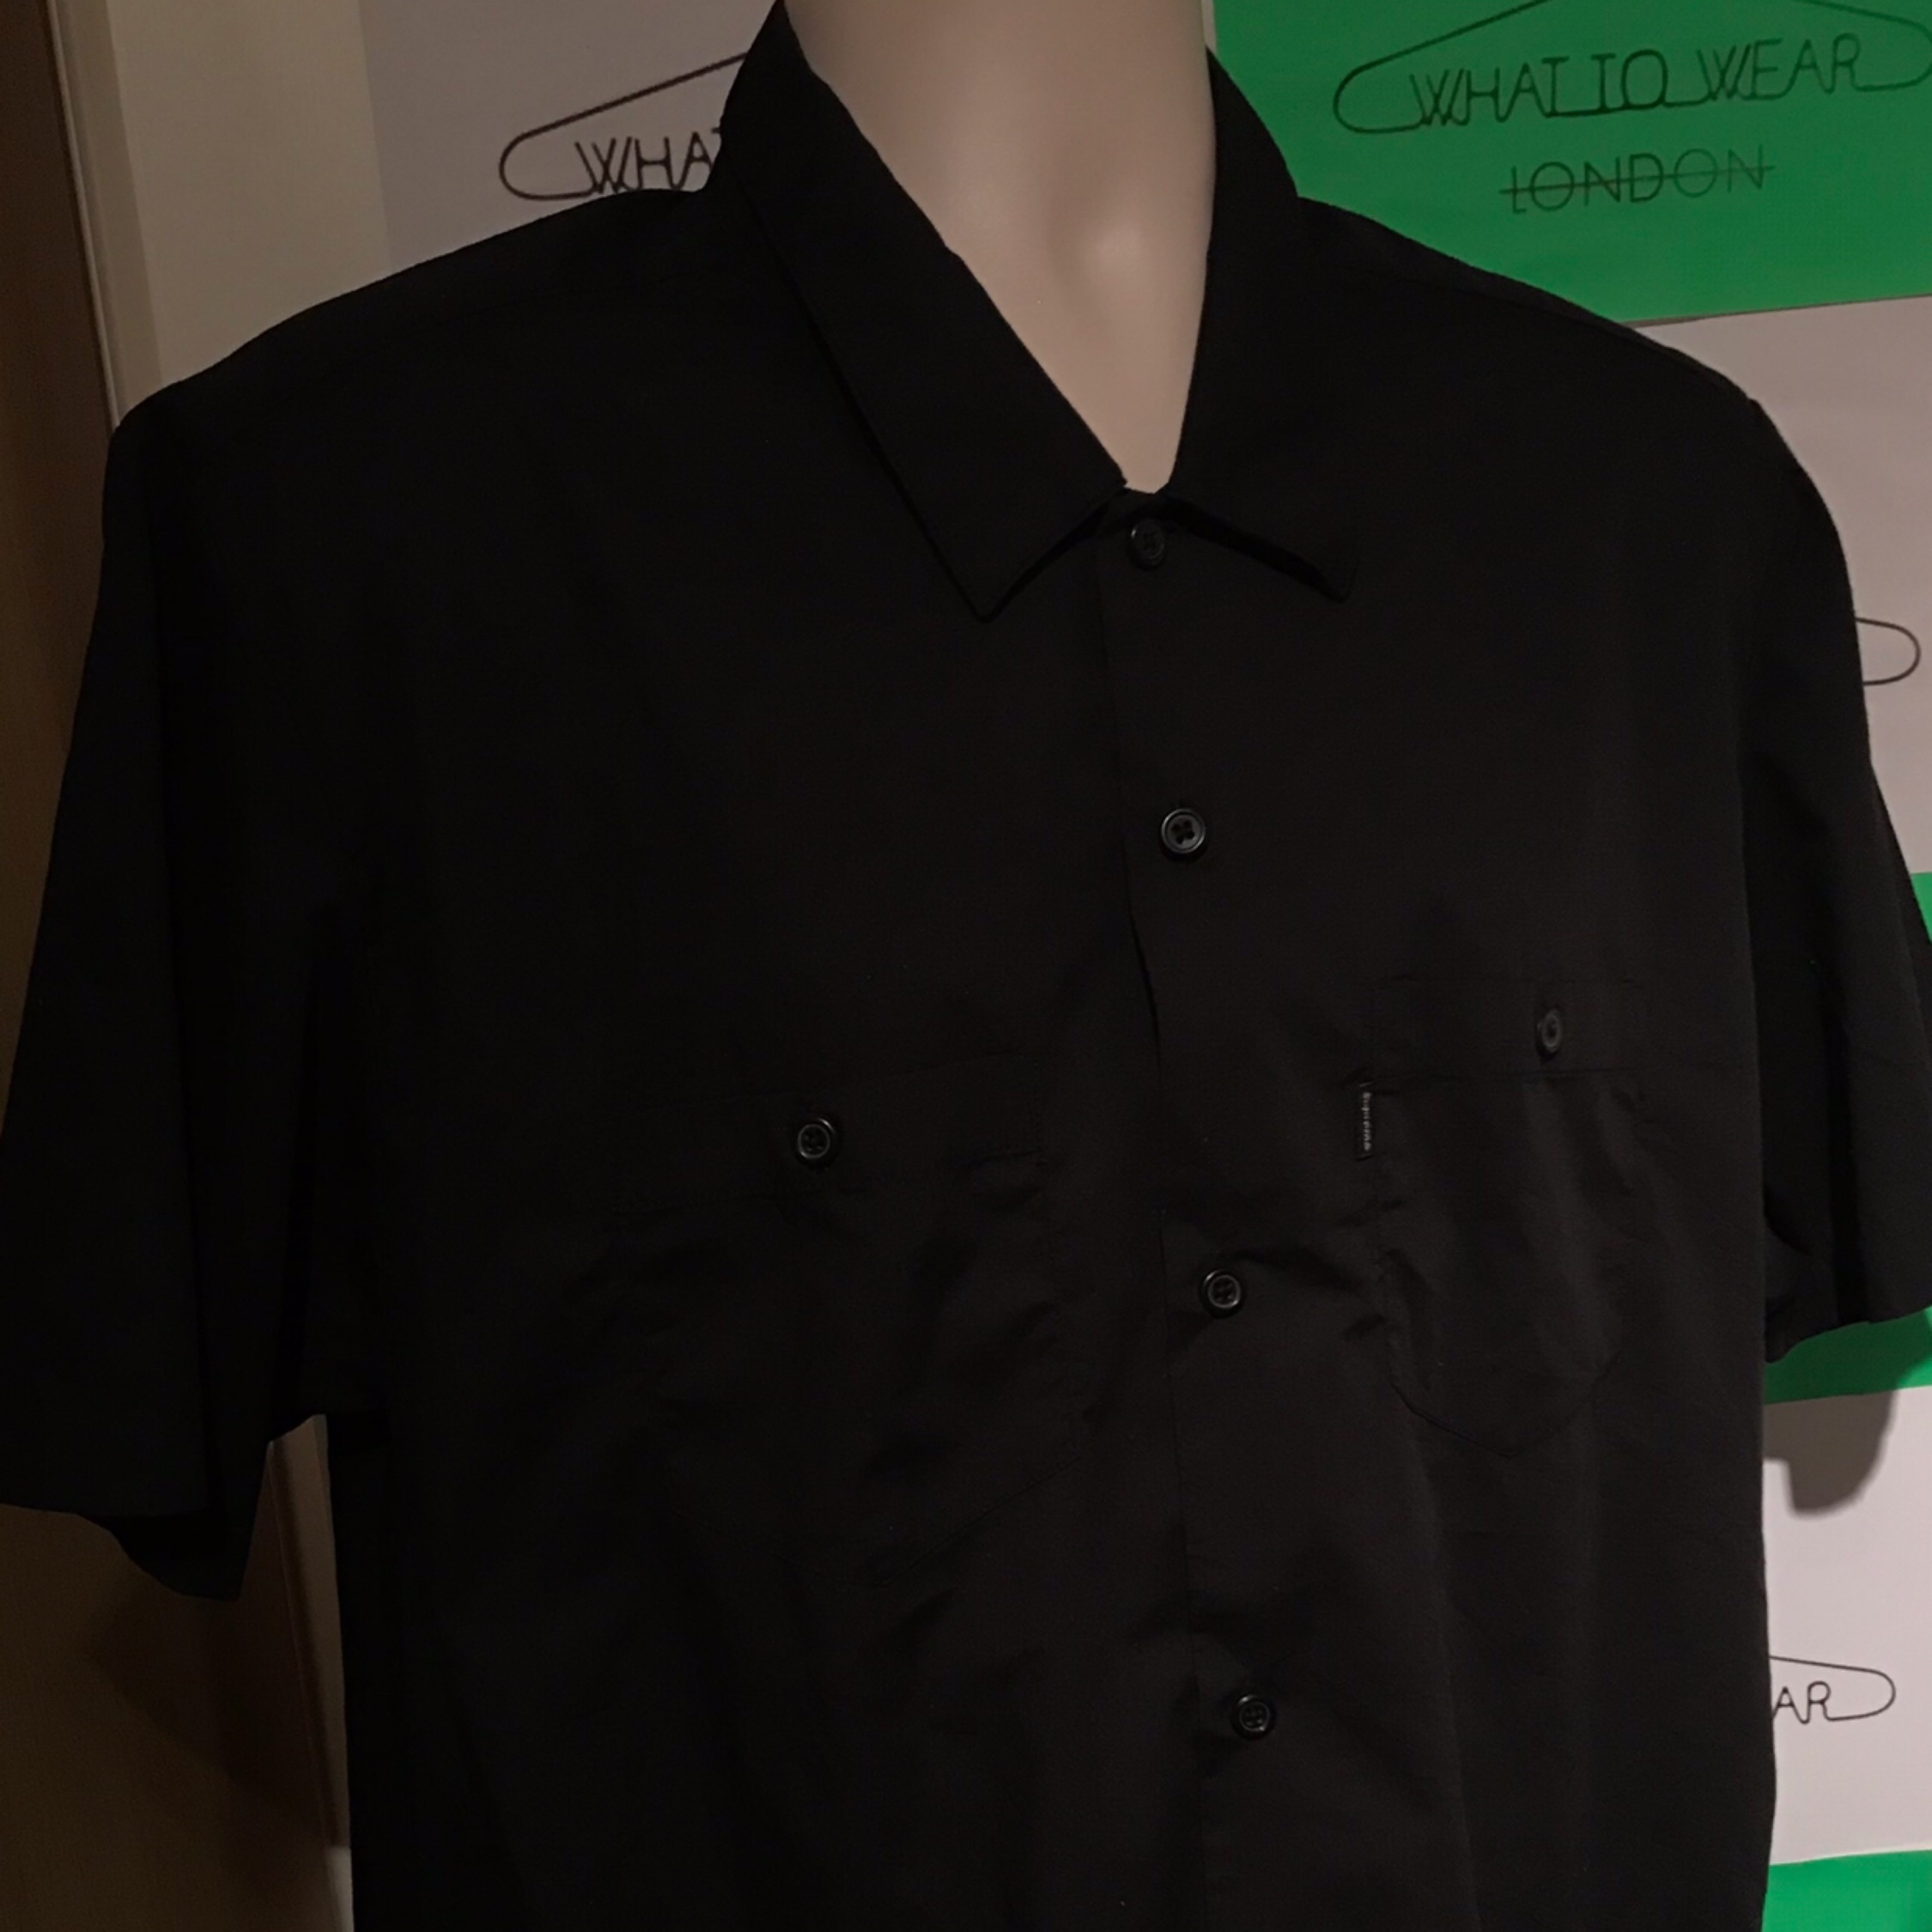 Ss16 Supreme Mary S/S Work Shirt